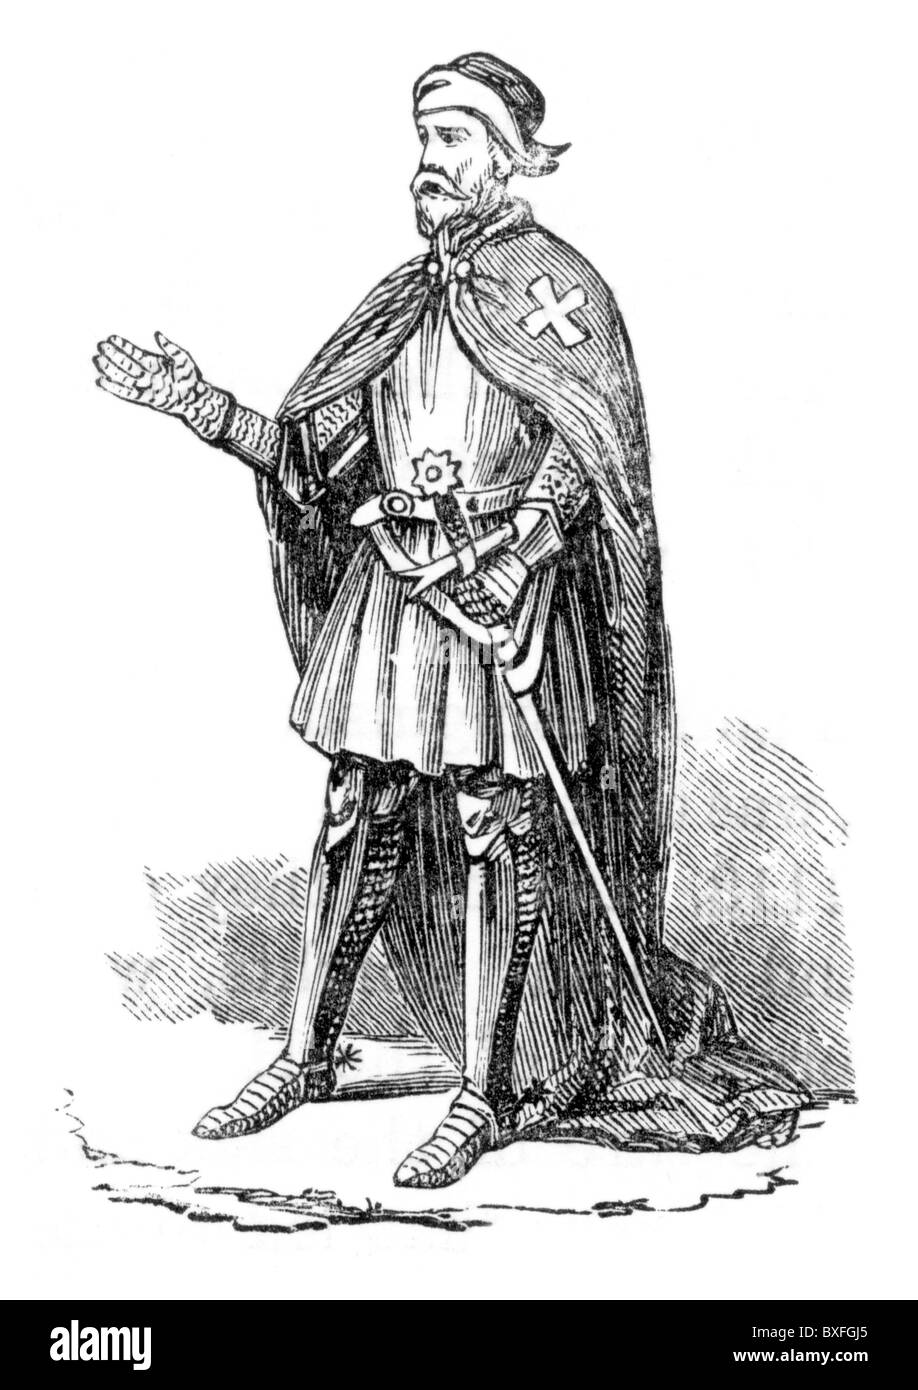 A Knights Hospitaler, 12th century; Black and White Illustration; - Stock Image